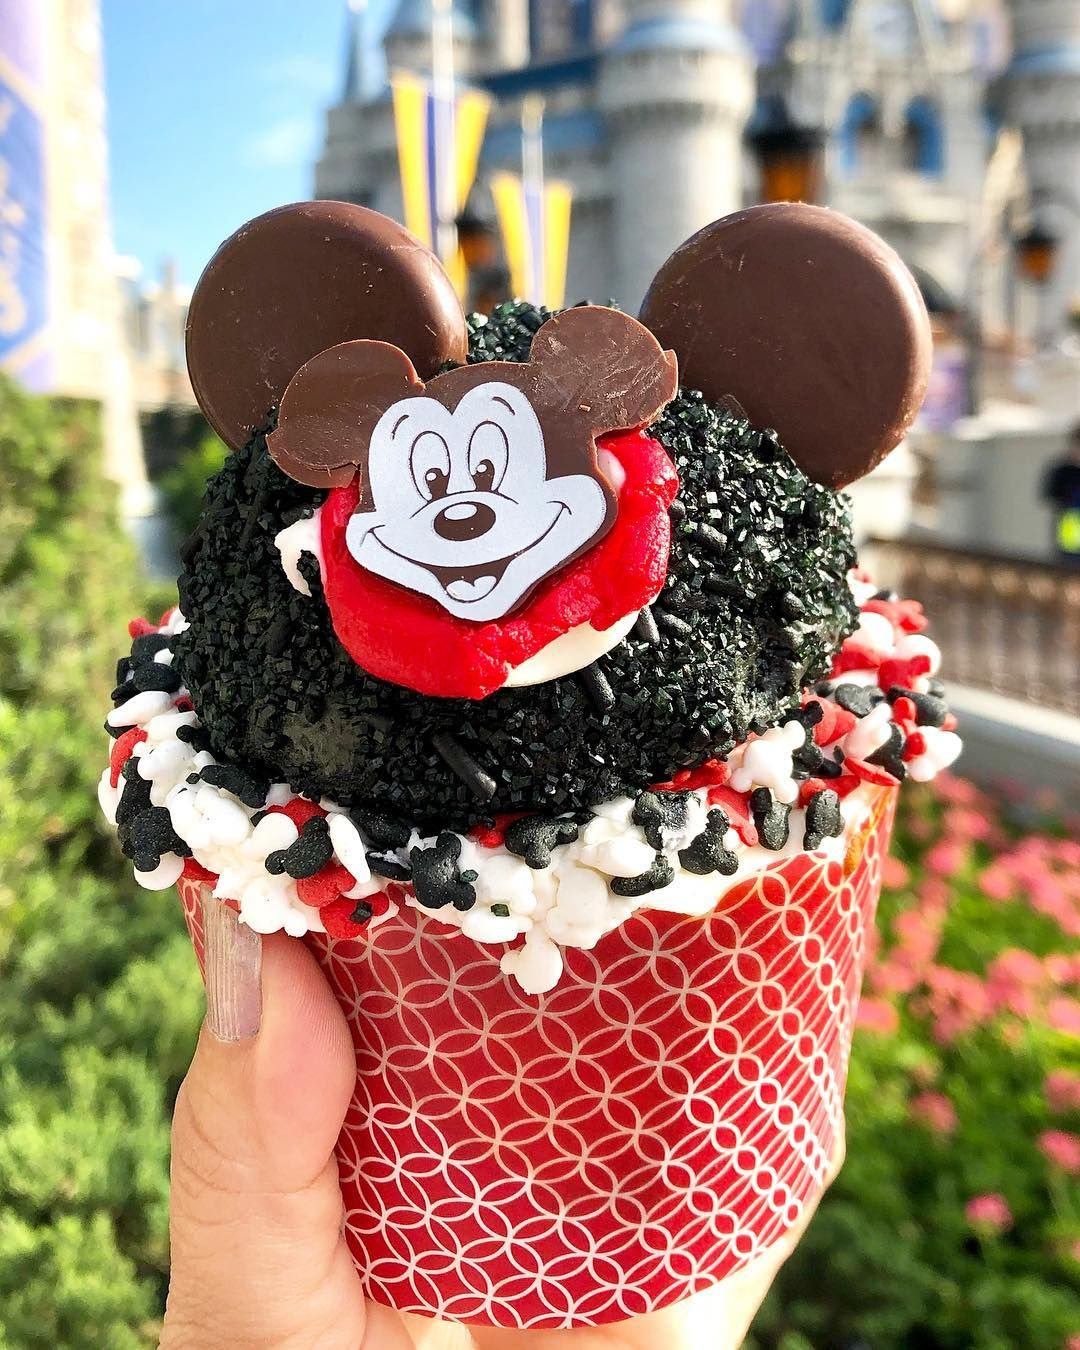 Disney Food Blog On Instagram New Cupcake Alert Find This Actually Pretty Tasty Mickey Mouse Club Cupcake In Disney Food Disney Desserts Disney Food Blog